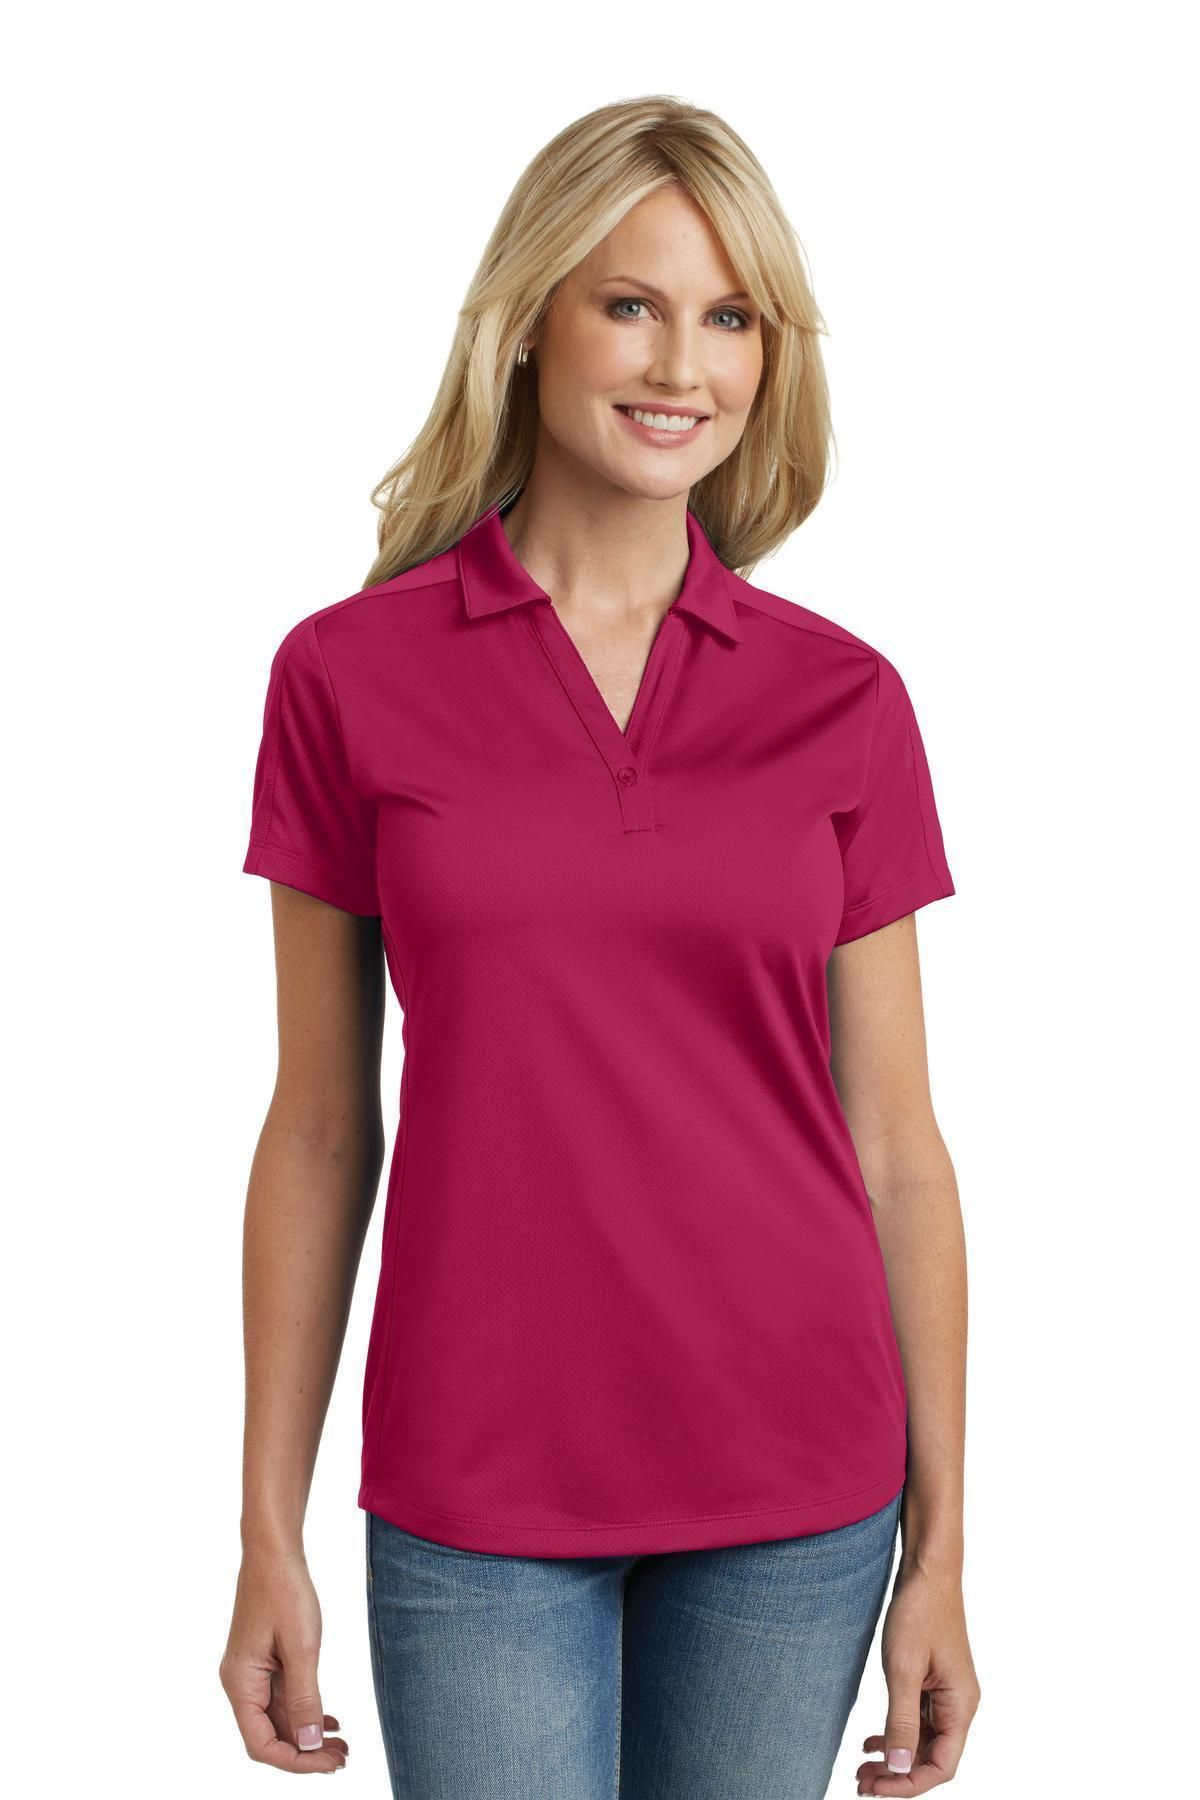 566d741b98c1f7 Port Authority Ladies Diamond Jacquard Polo L569 Dark Fuchsia Diamond